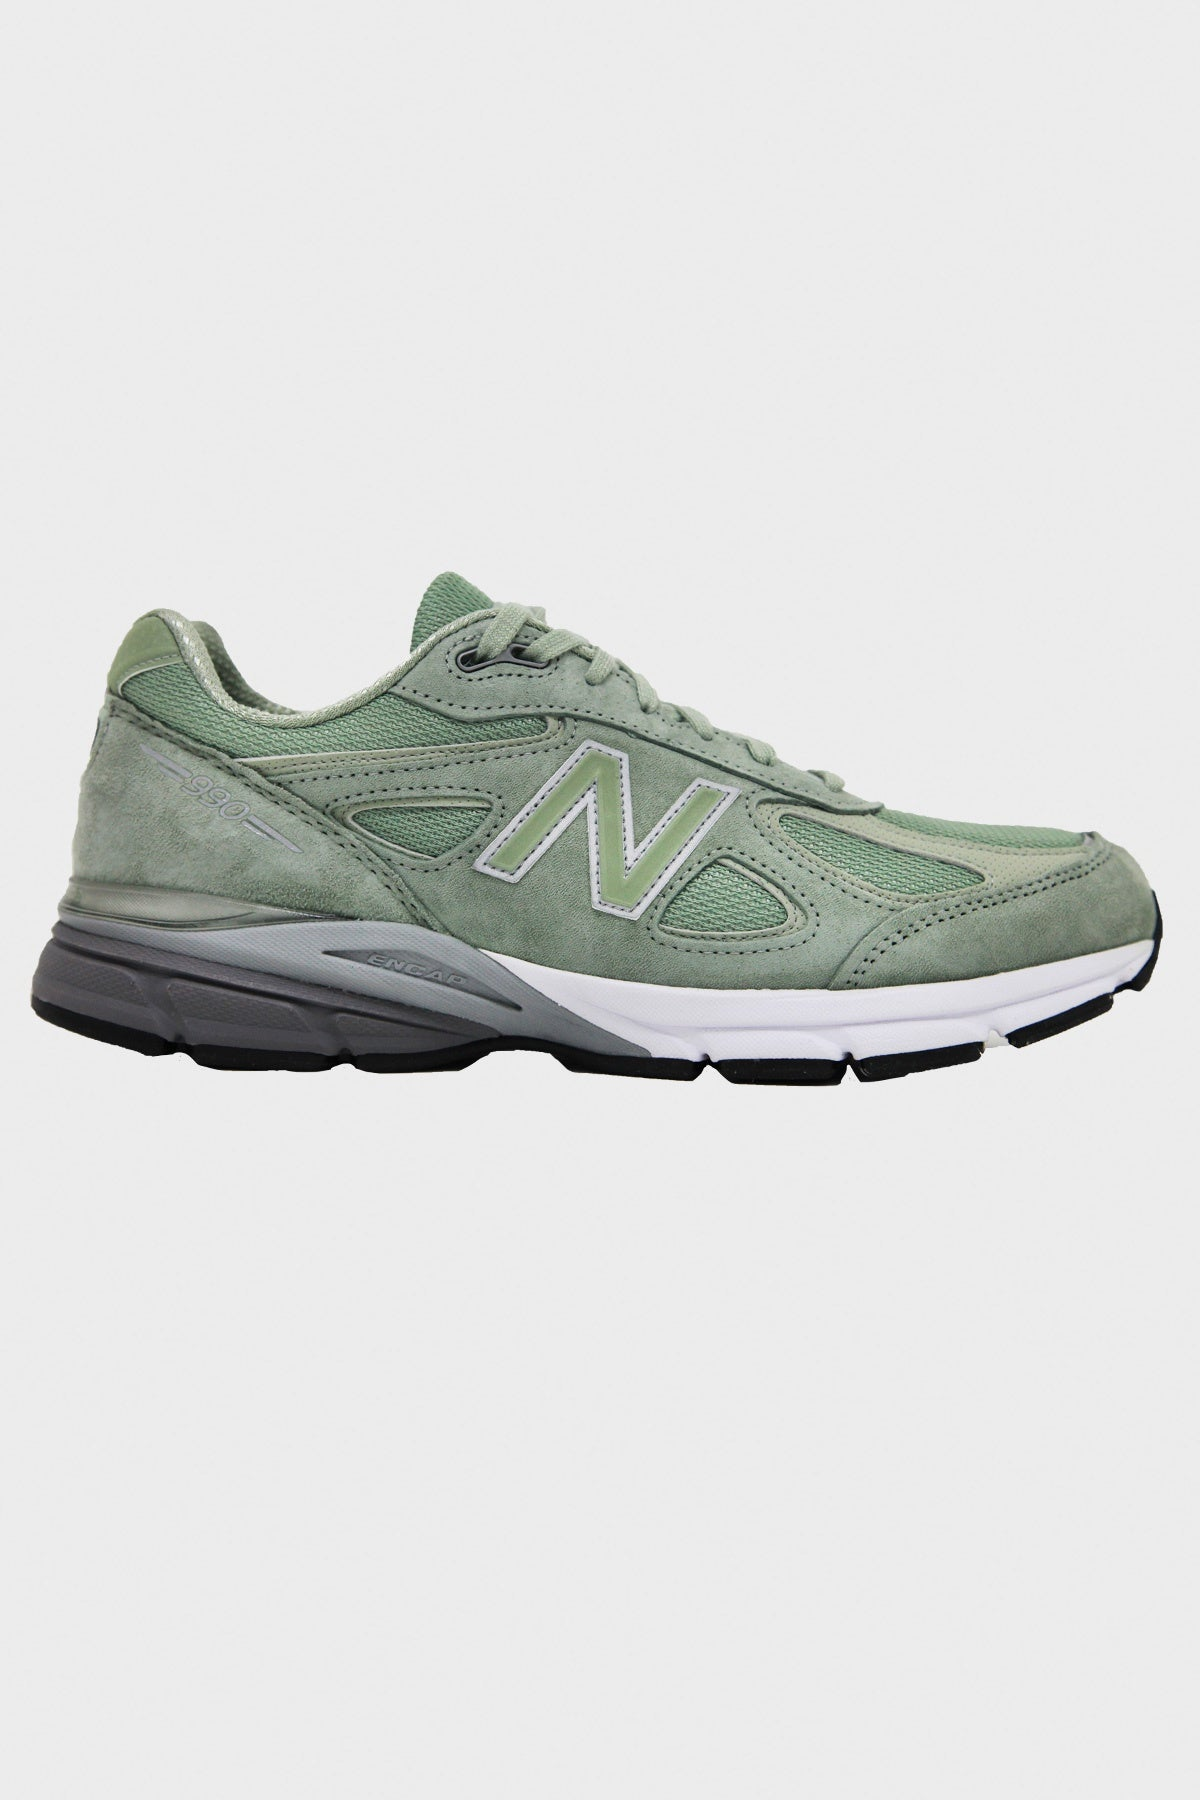 New Balance - 990v4 - Silver Mint - Canoe Club